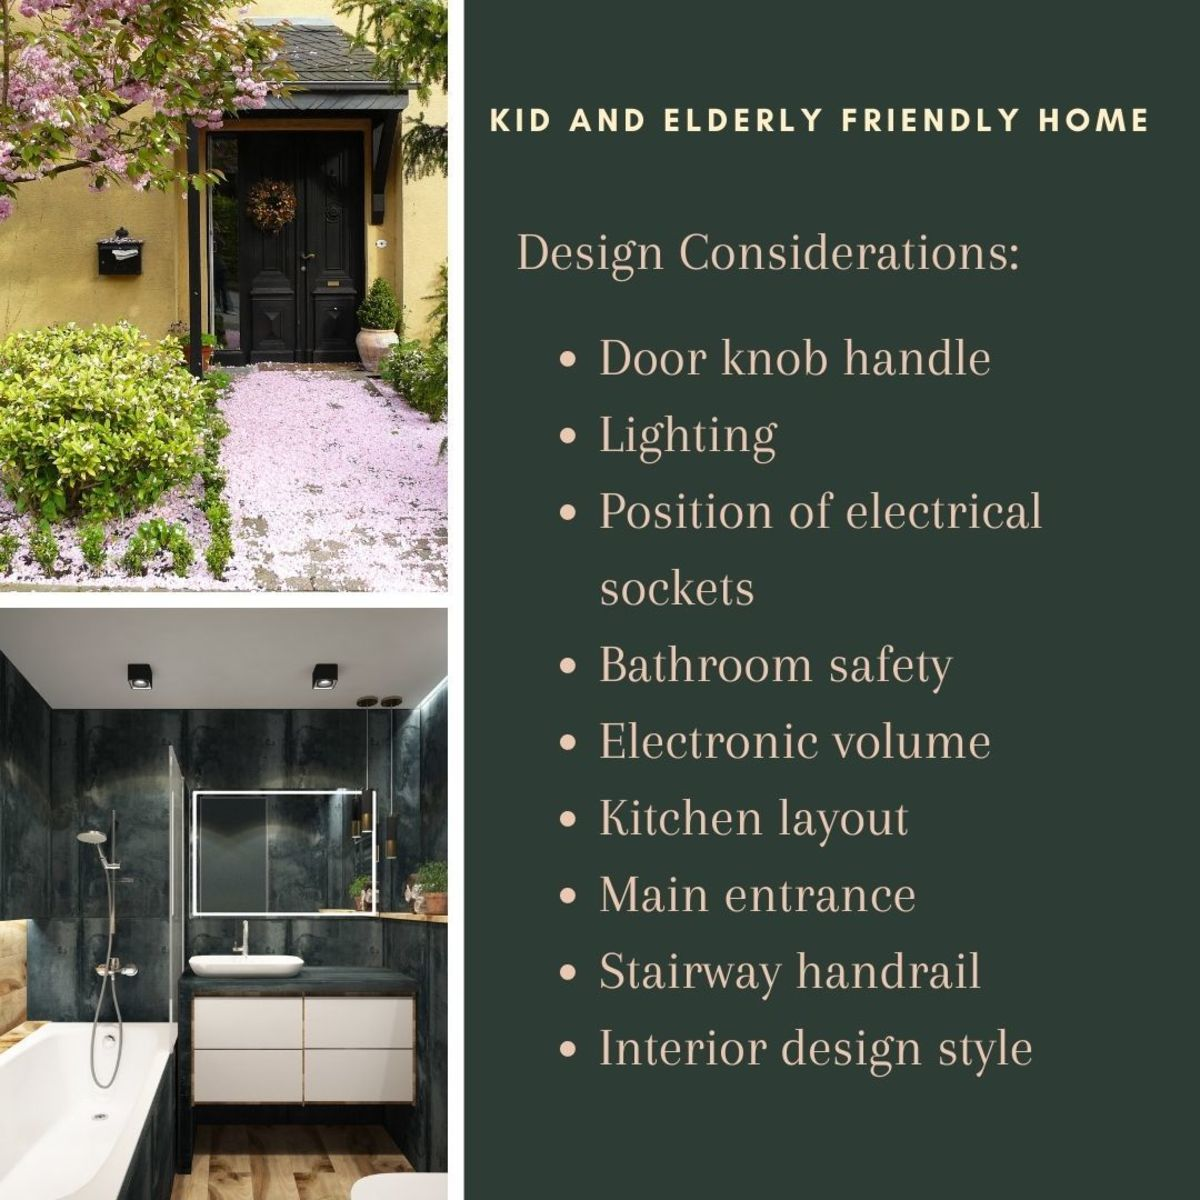 Design your house to be kid and elderly-friendly so it will be suitable for your old age